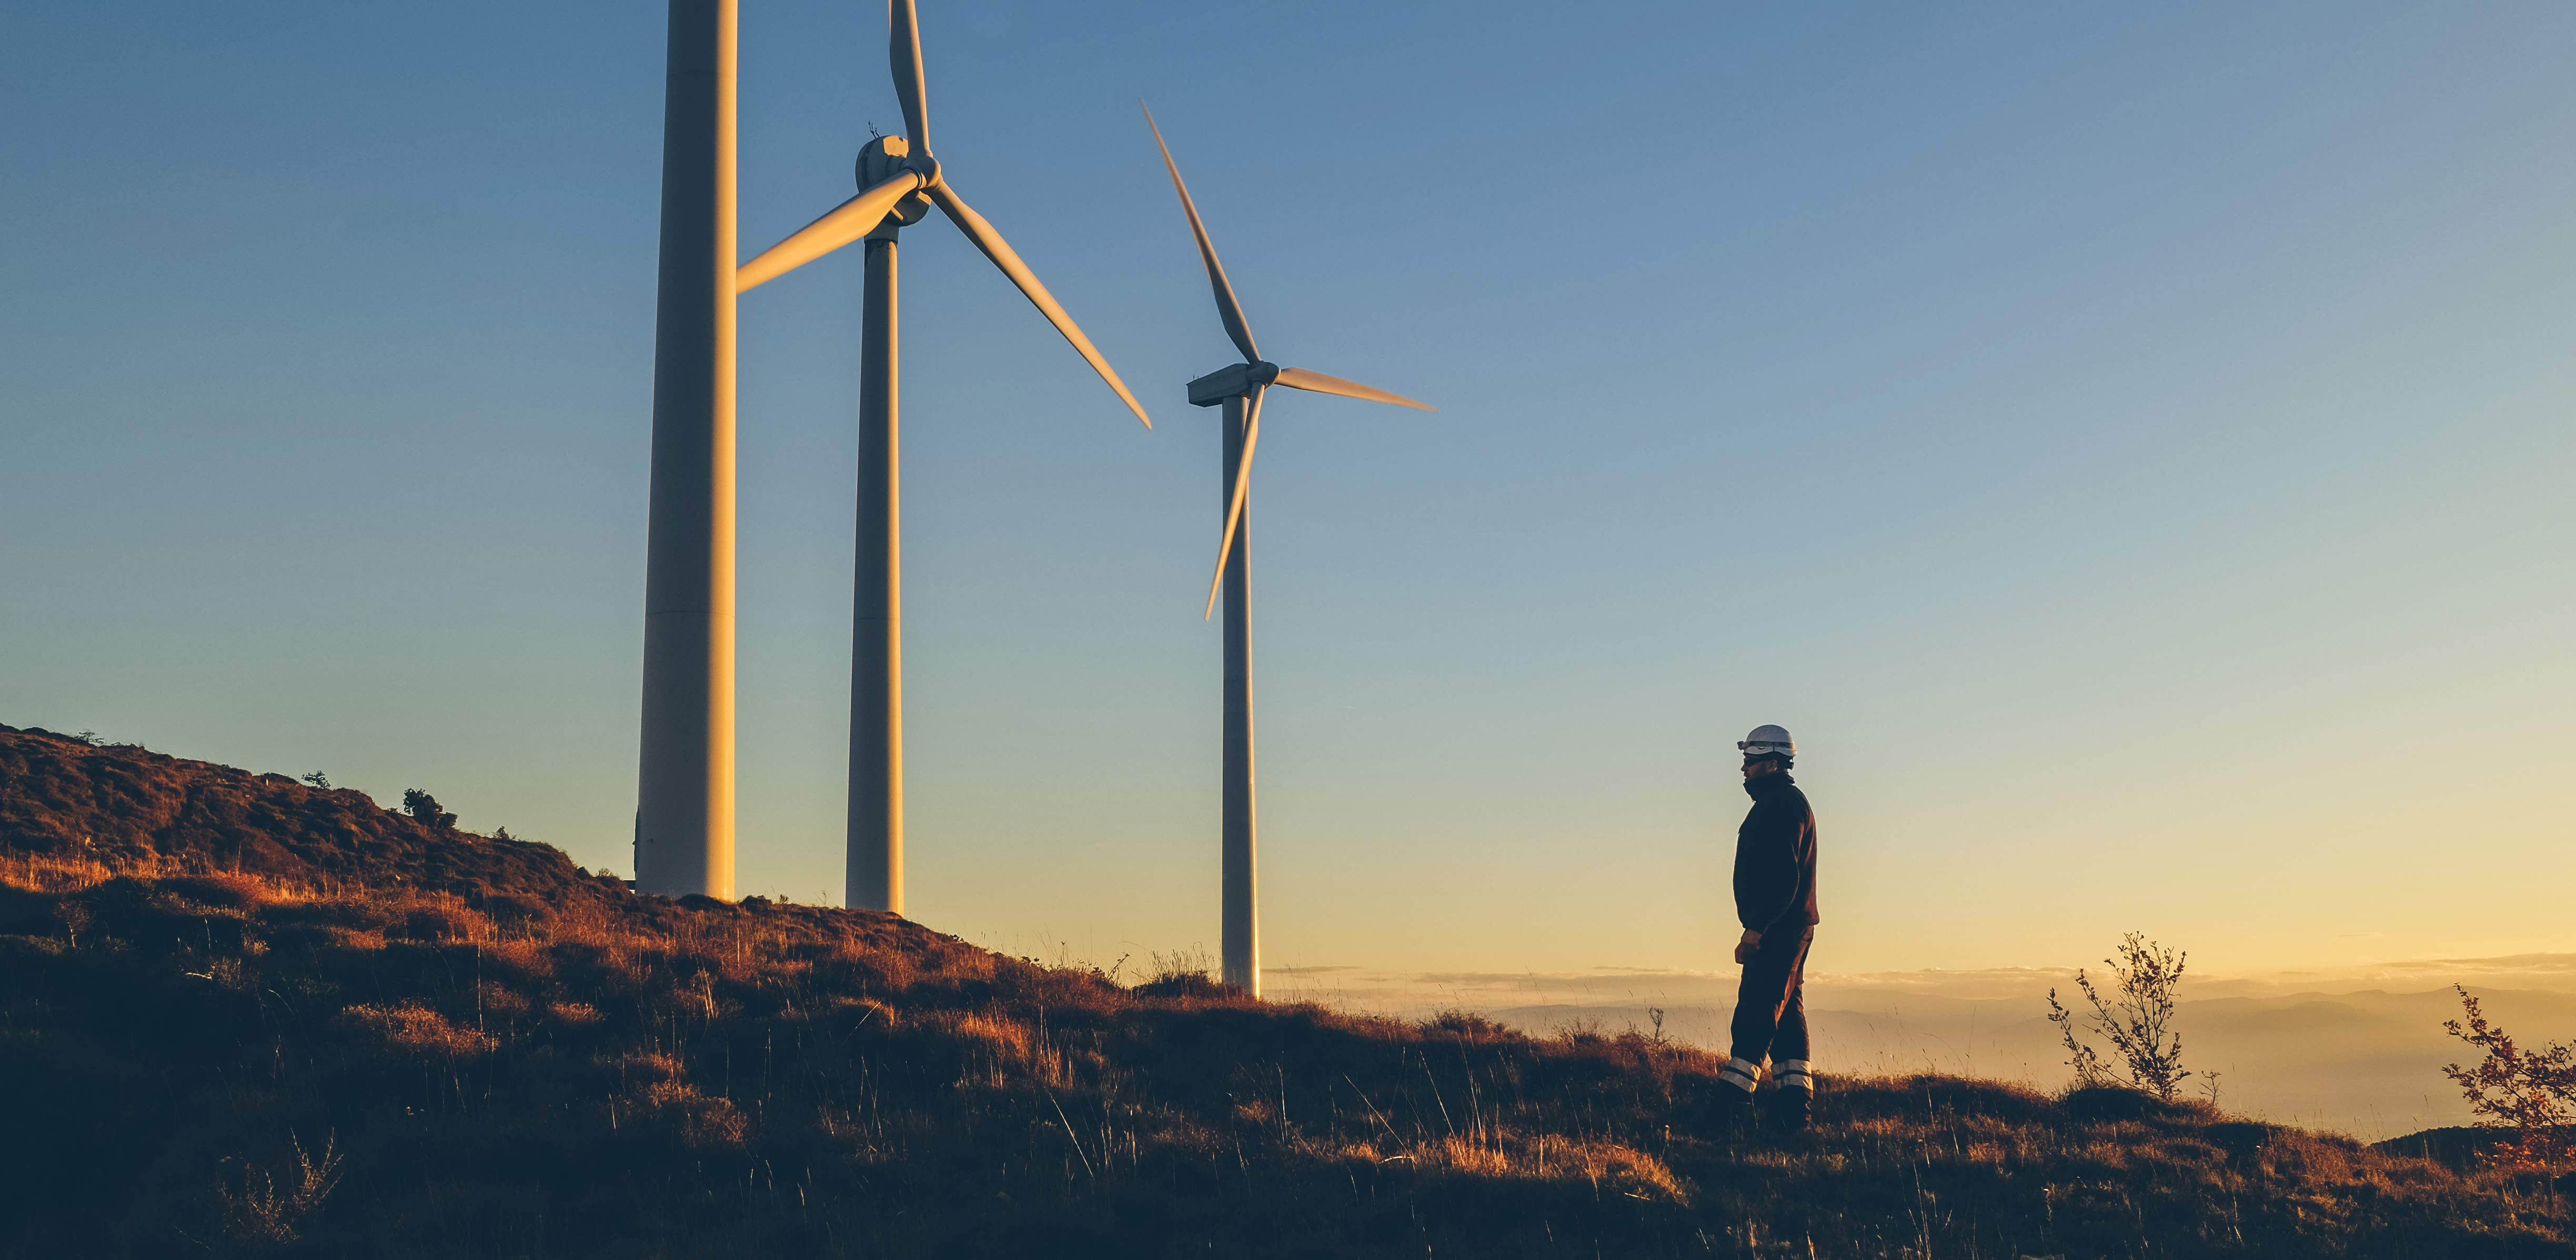 Australia's renewable energy sector – 2019 and beyond